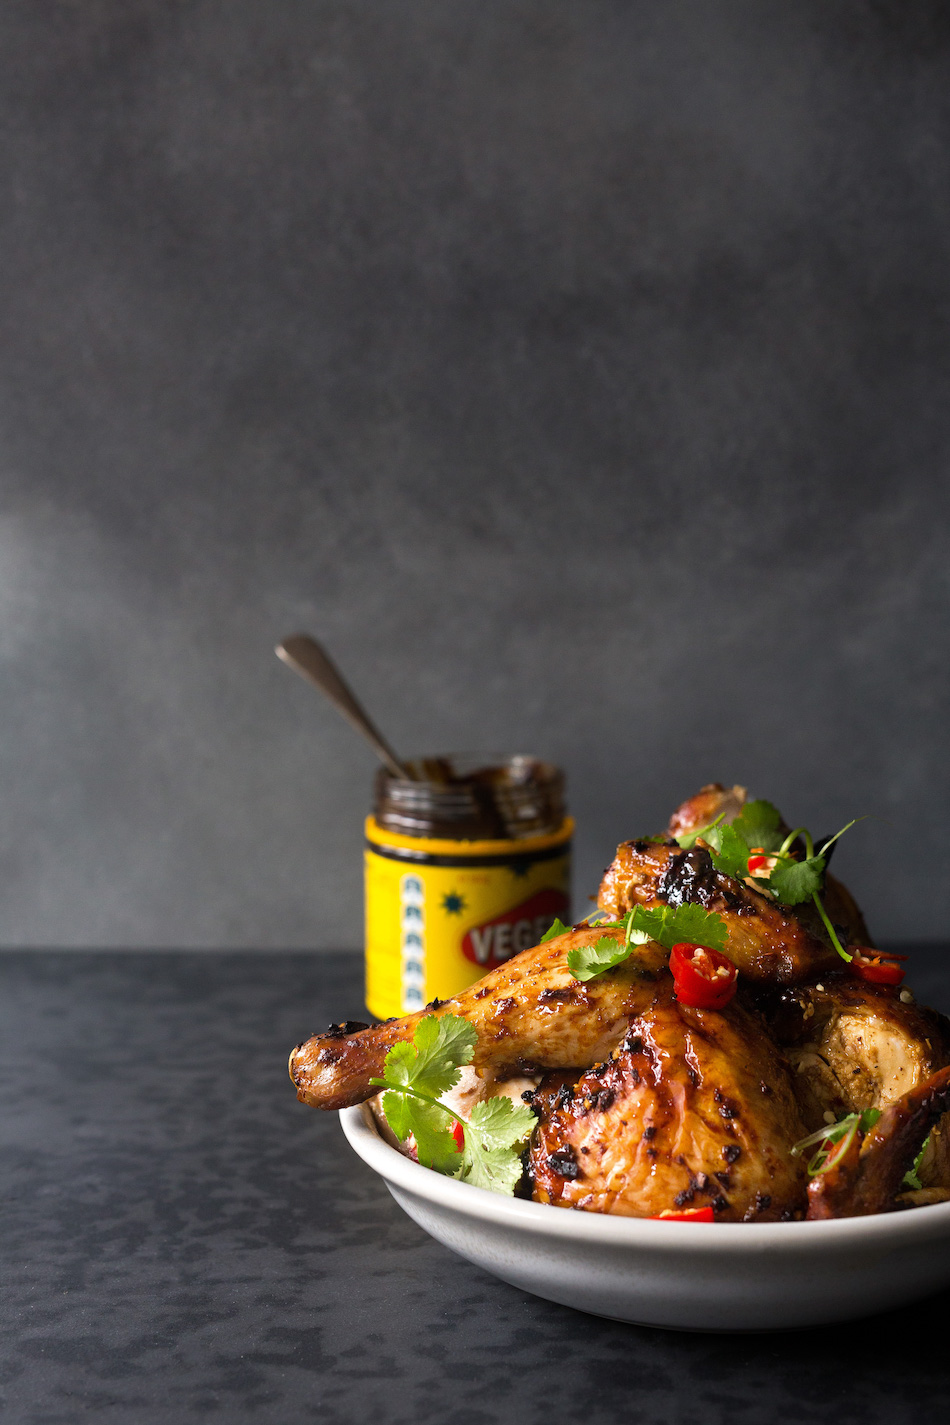 vegemite smoked maple roast chicken